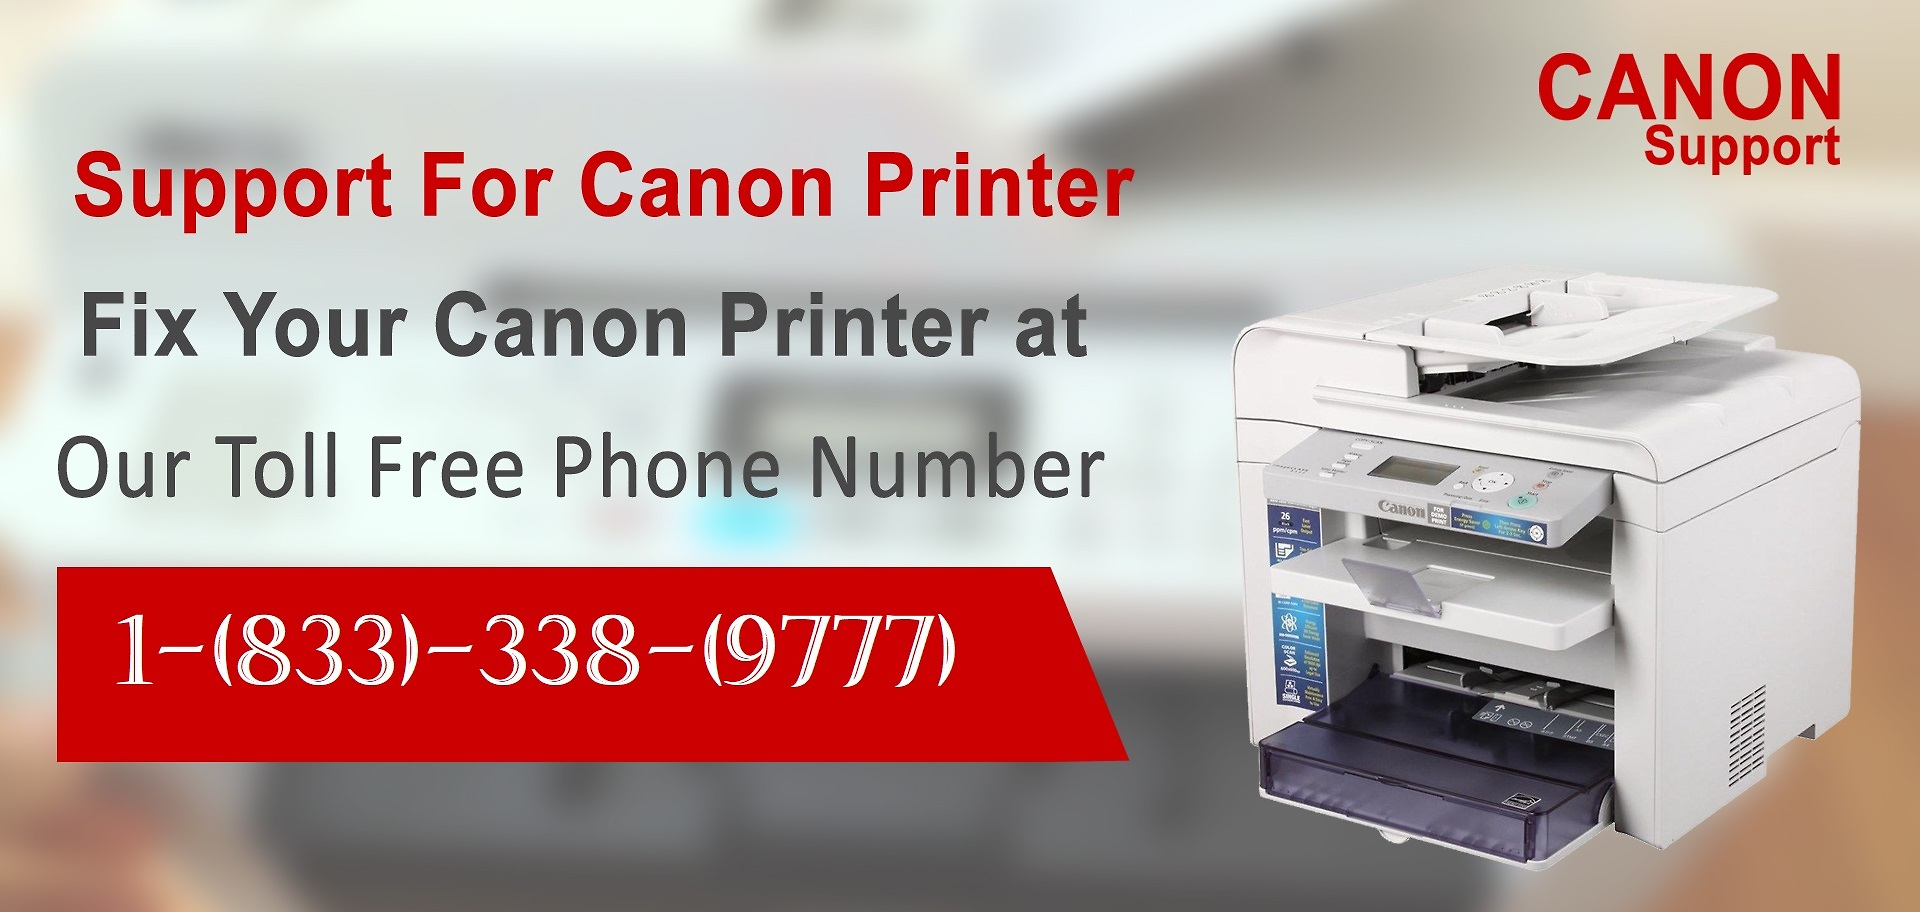 canon printer support  1 833 338 9777   u2014 canon printer has stopped working properly discuss